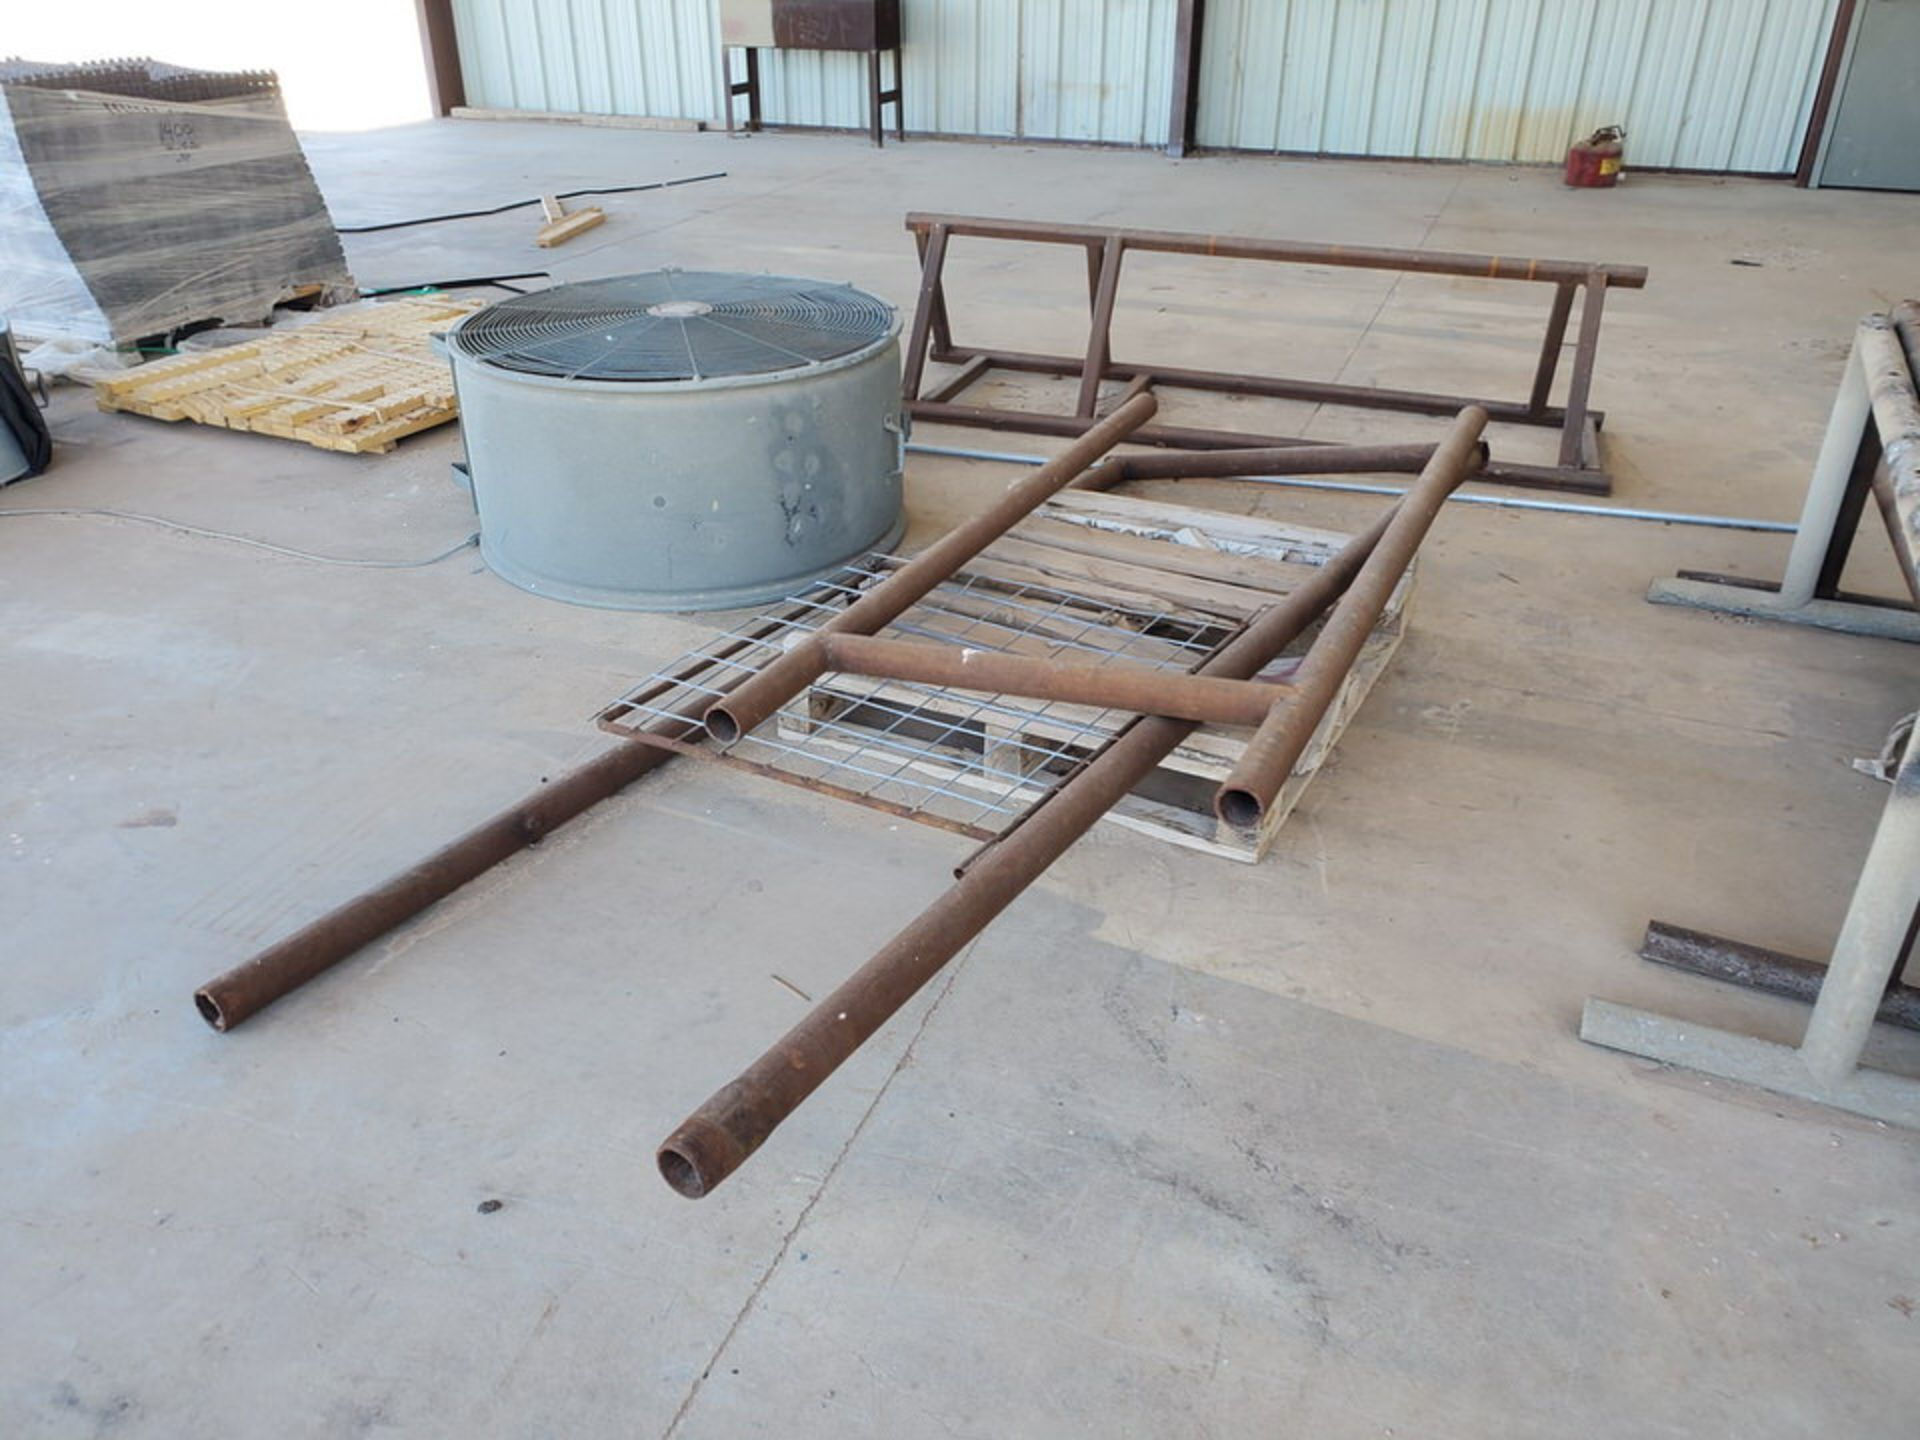 "Misc. Matl. To Include But Not Limited To: 42"" Drum Fan, Saw Horses, Welding Table, etc. - Image 4 of 10"